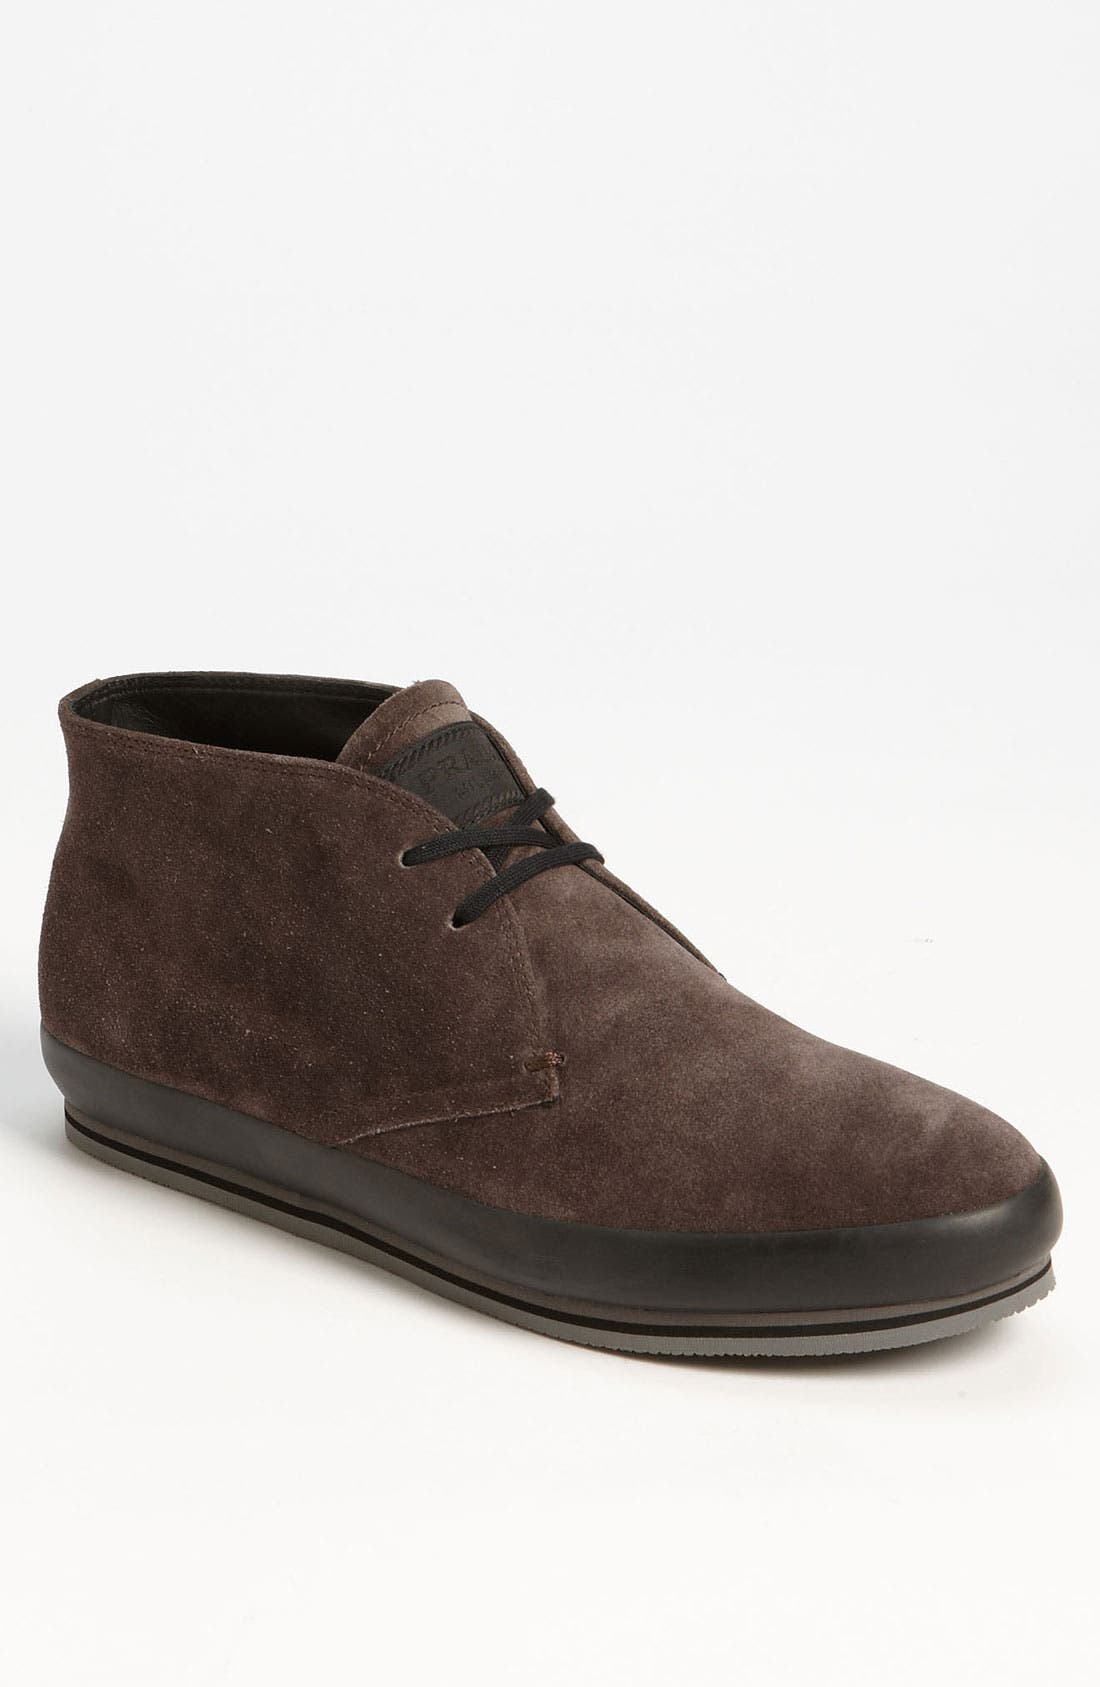 Suede Chukka Boot, Main, color, 060